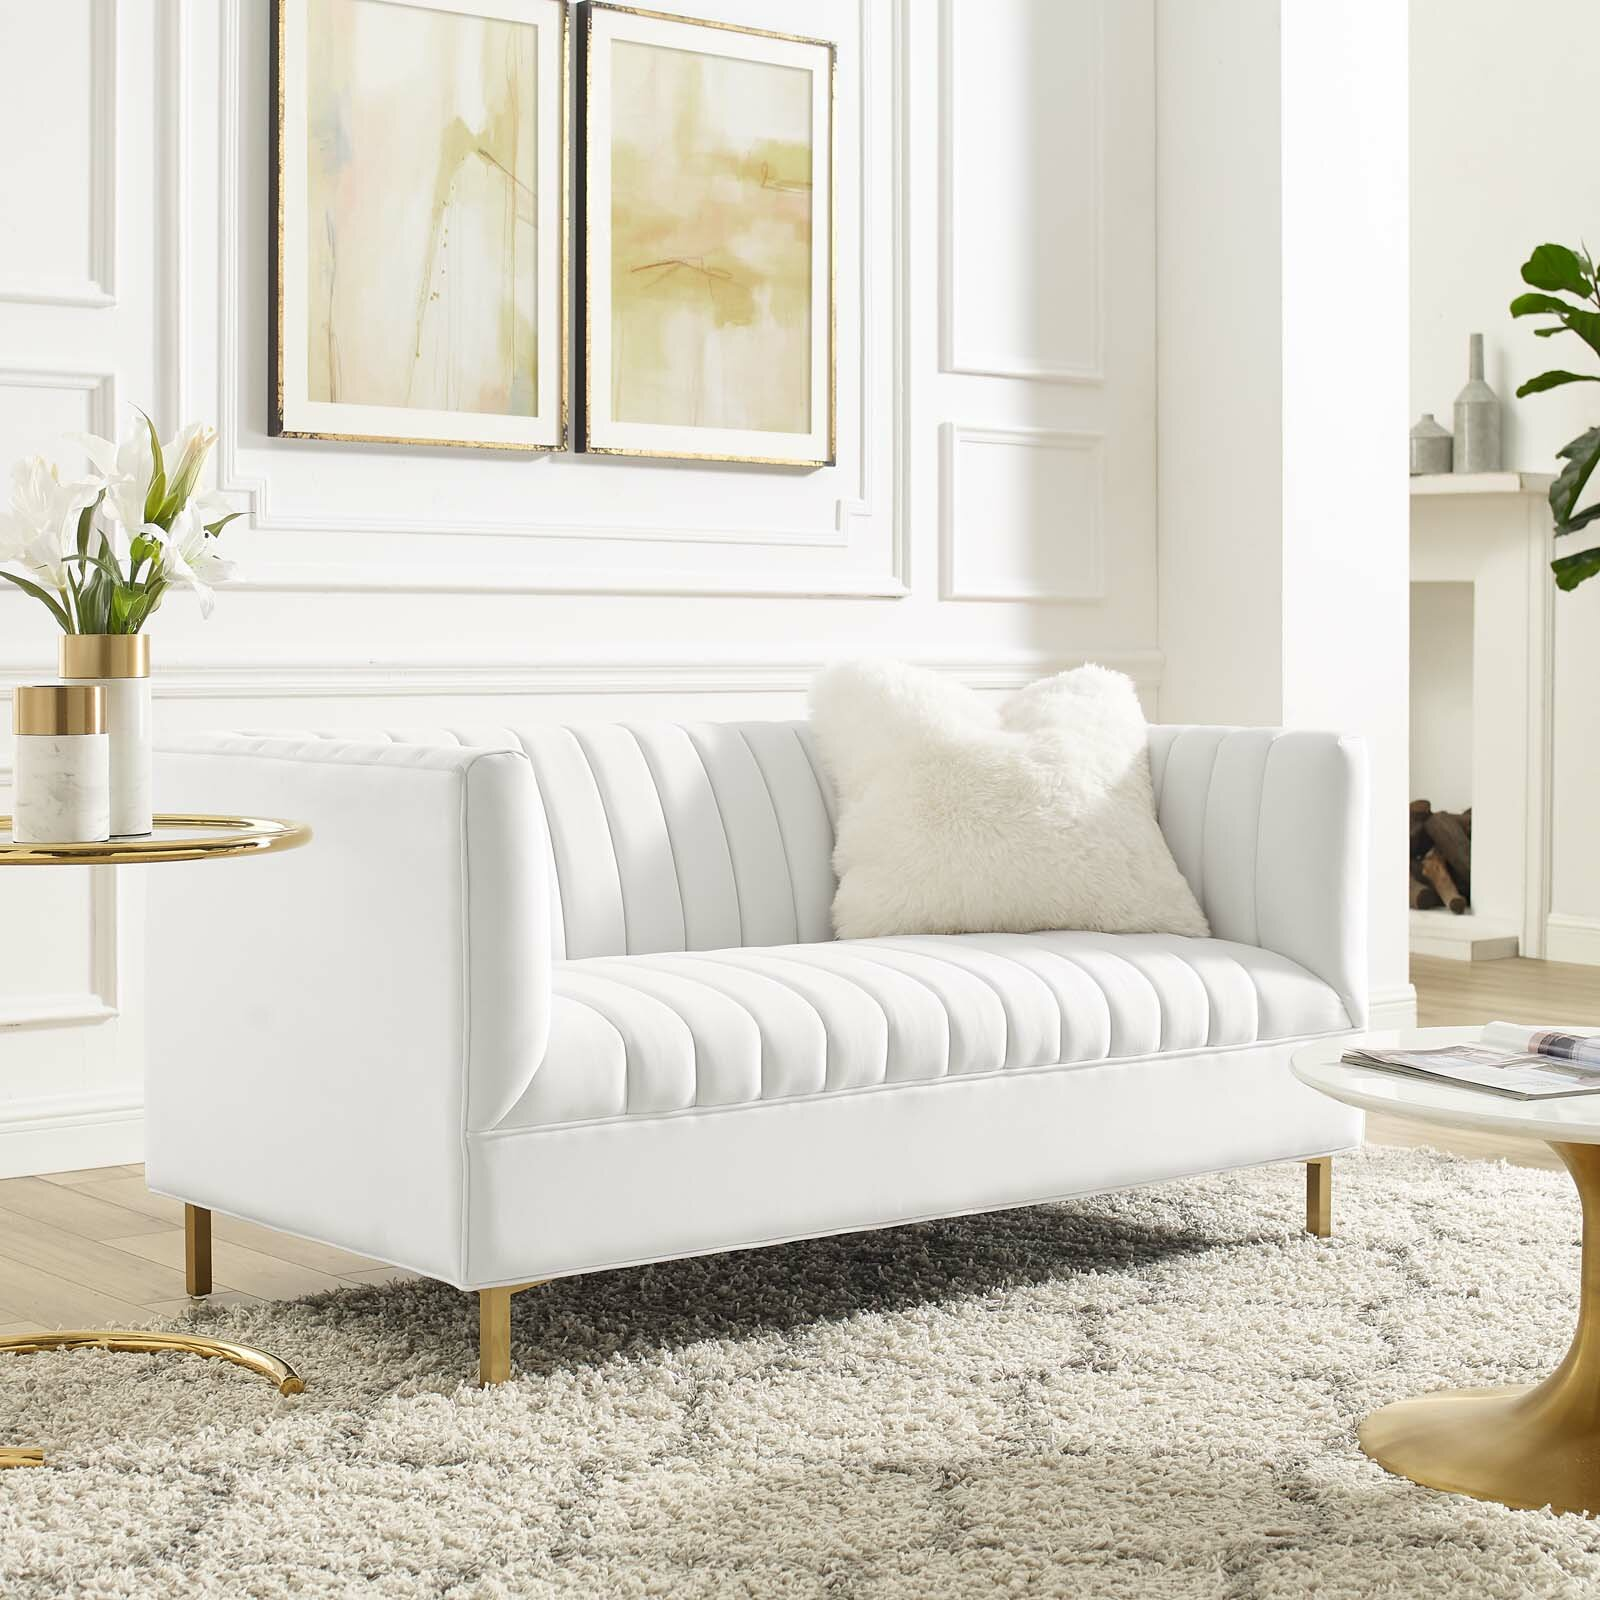 60-inch-small-tufted-sofa-in-white-velvet-gold-legs-luxurious-space-saving-furniture-for-apartment-loft-living-room-bedroom-or-home-office